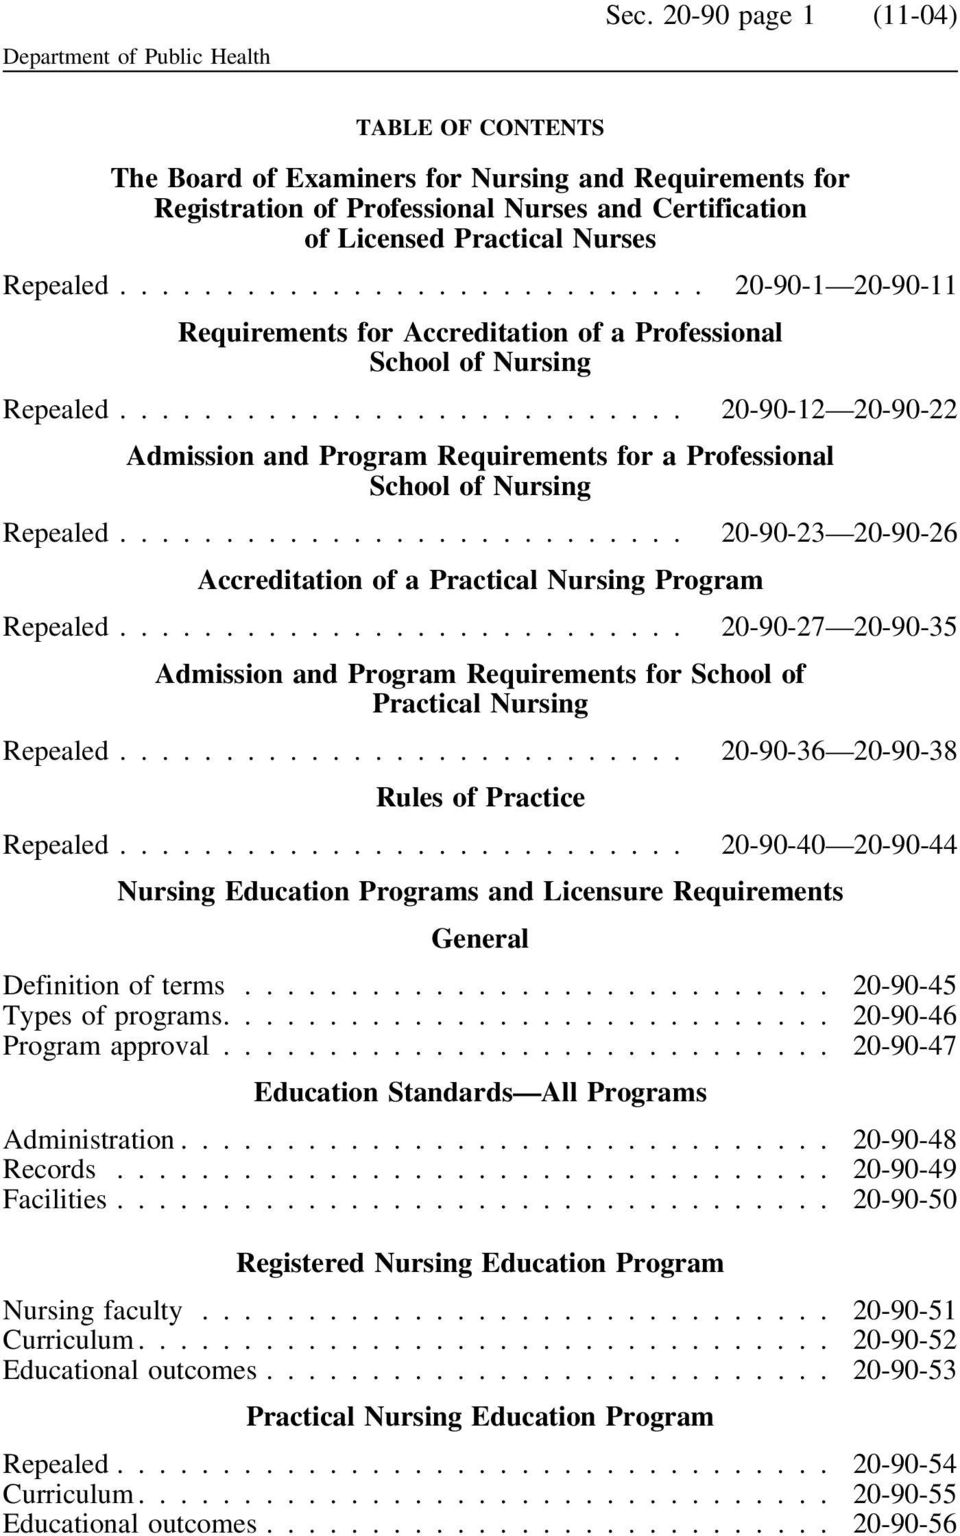 .. 20-90-1 20-90-11 Requirements for Accreditation of a Professional School of Nursing Repealed... 20-90-12 20-90-22 Admission and Program Requirements for a Professional School of Nursing Repealed.